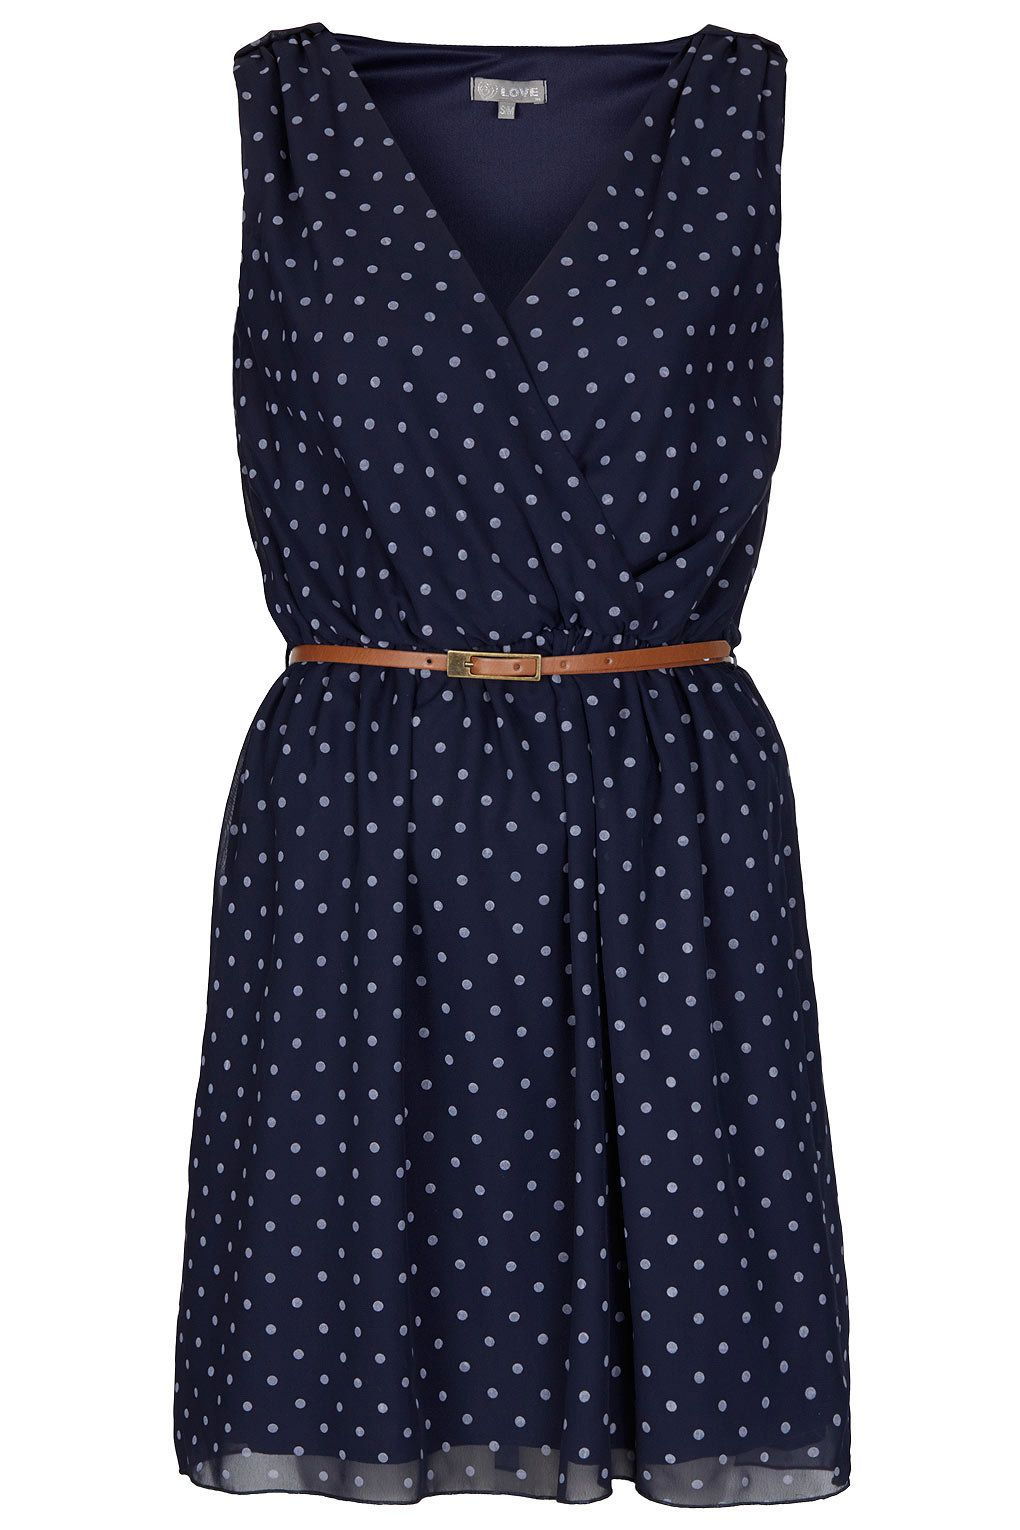 **Cross Bust Dress by Love - Dresses - Clothing - Topshop